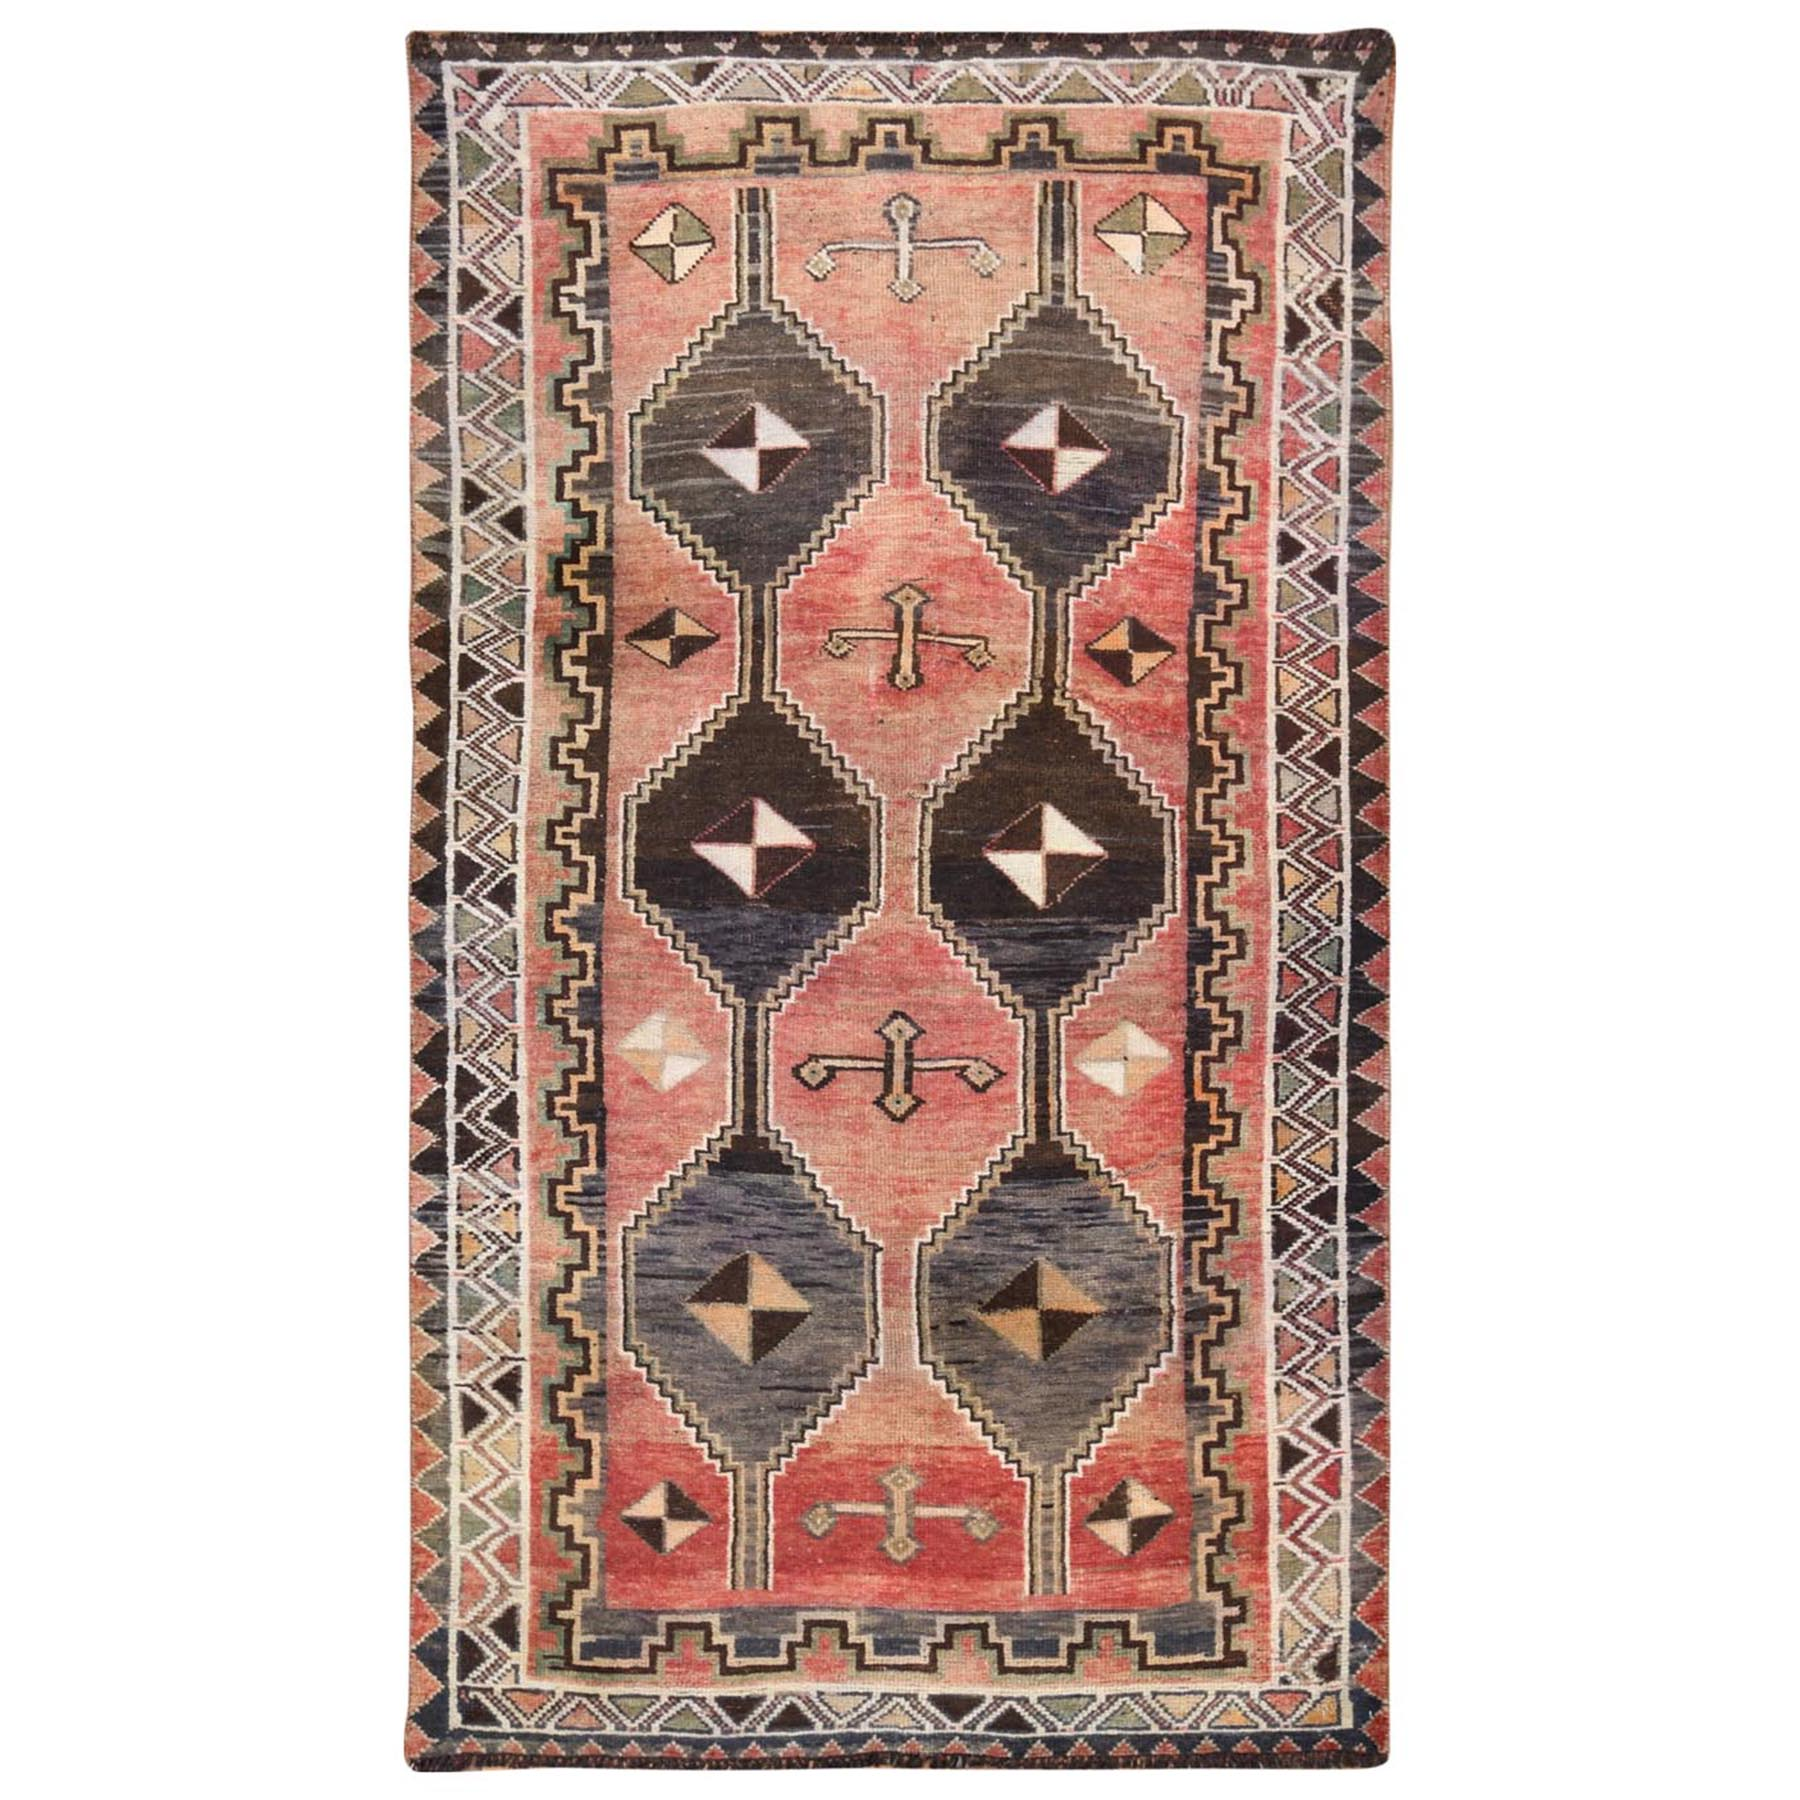 "3'10""x6'9"" Faded Red Persian Qashqai Vintage Worn Down Clean Organic Wool Bohemian Hand Woven Oriental Rug"